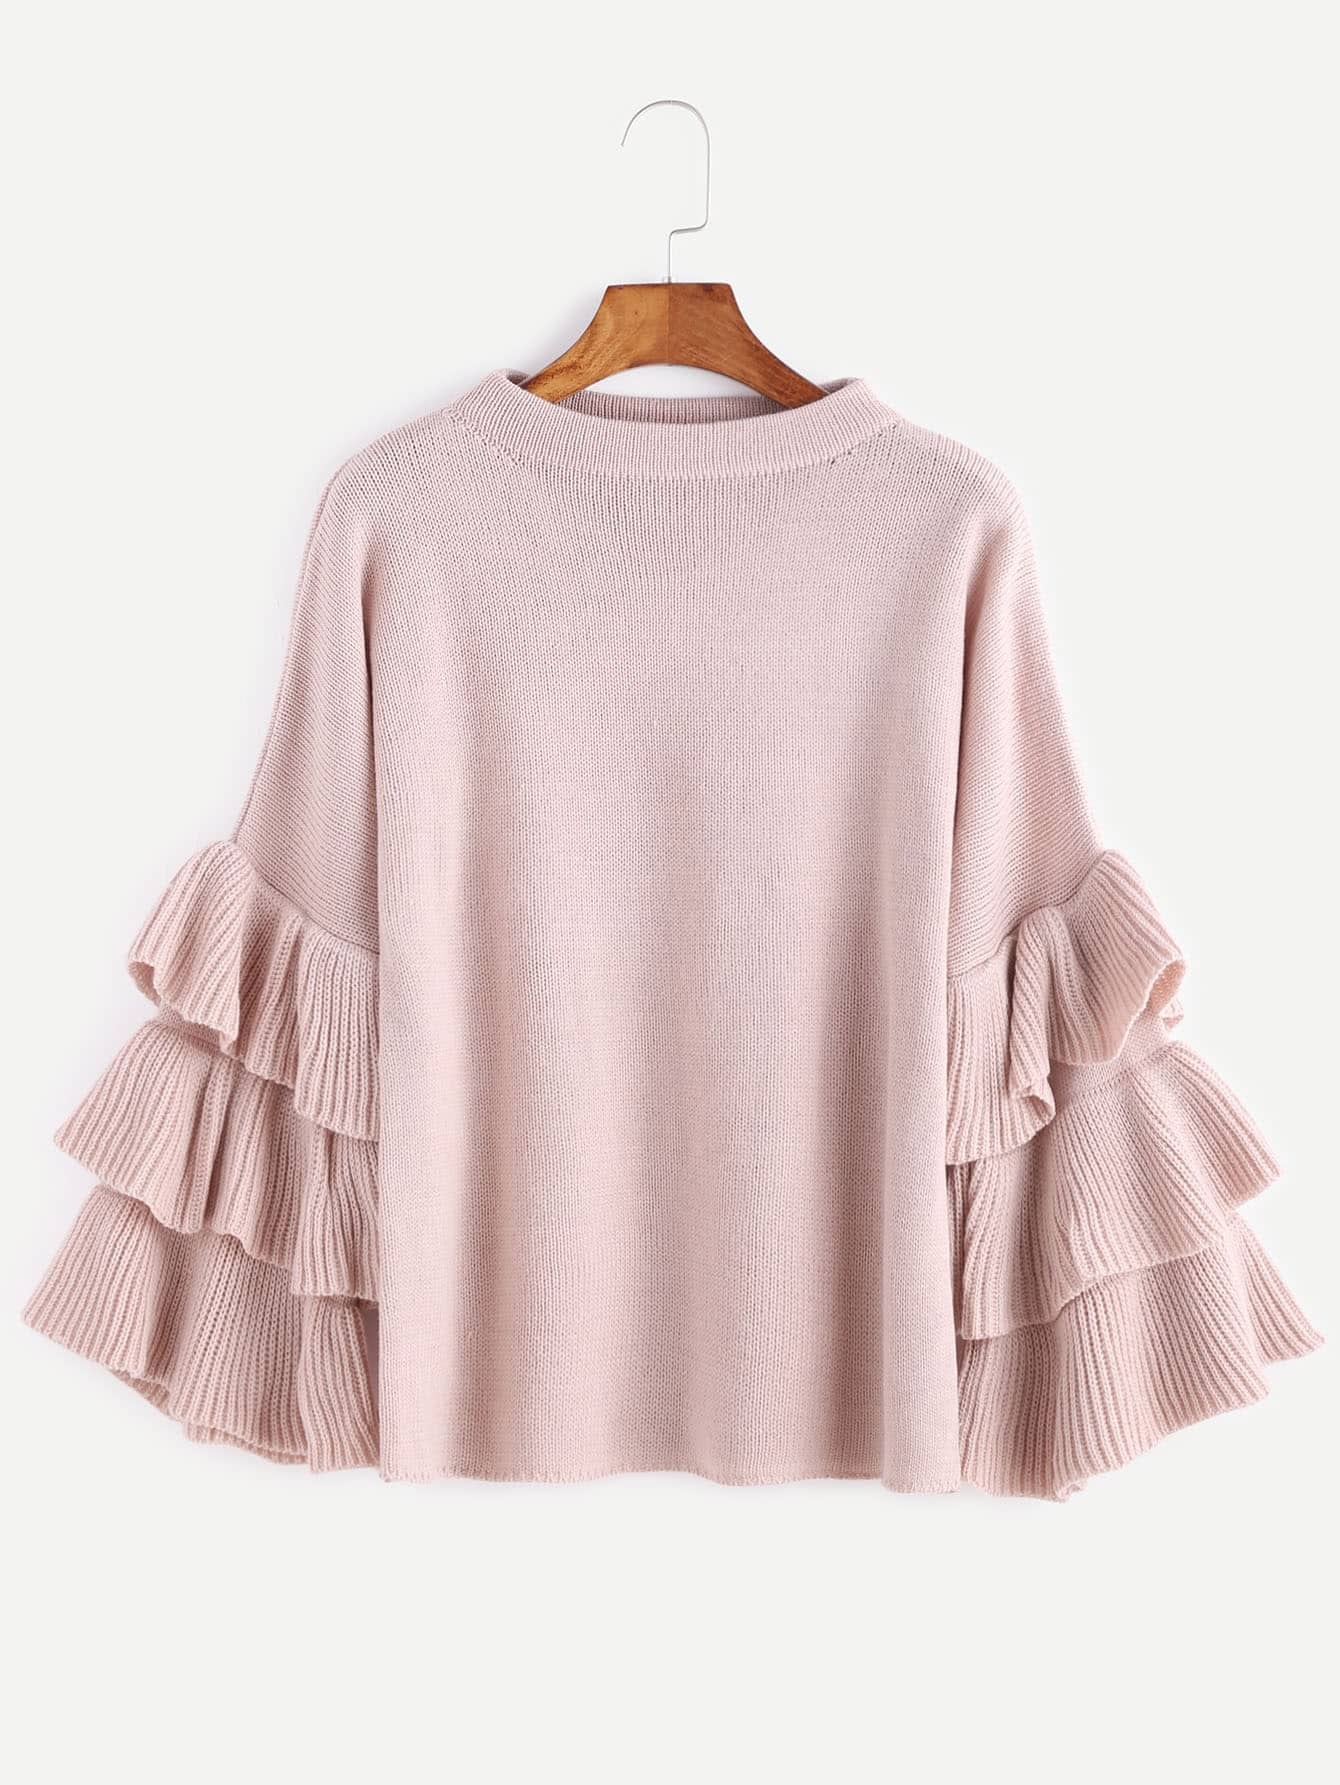 Pink Layered Ruffle Sleeve Pullover Sweater pearl detail layered frill sleeve top